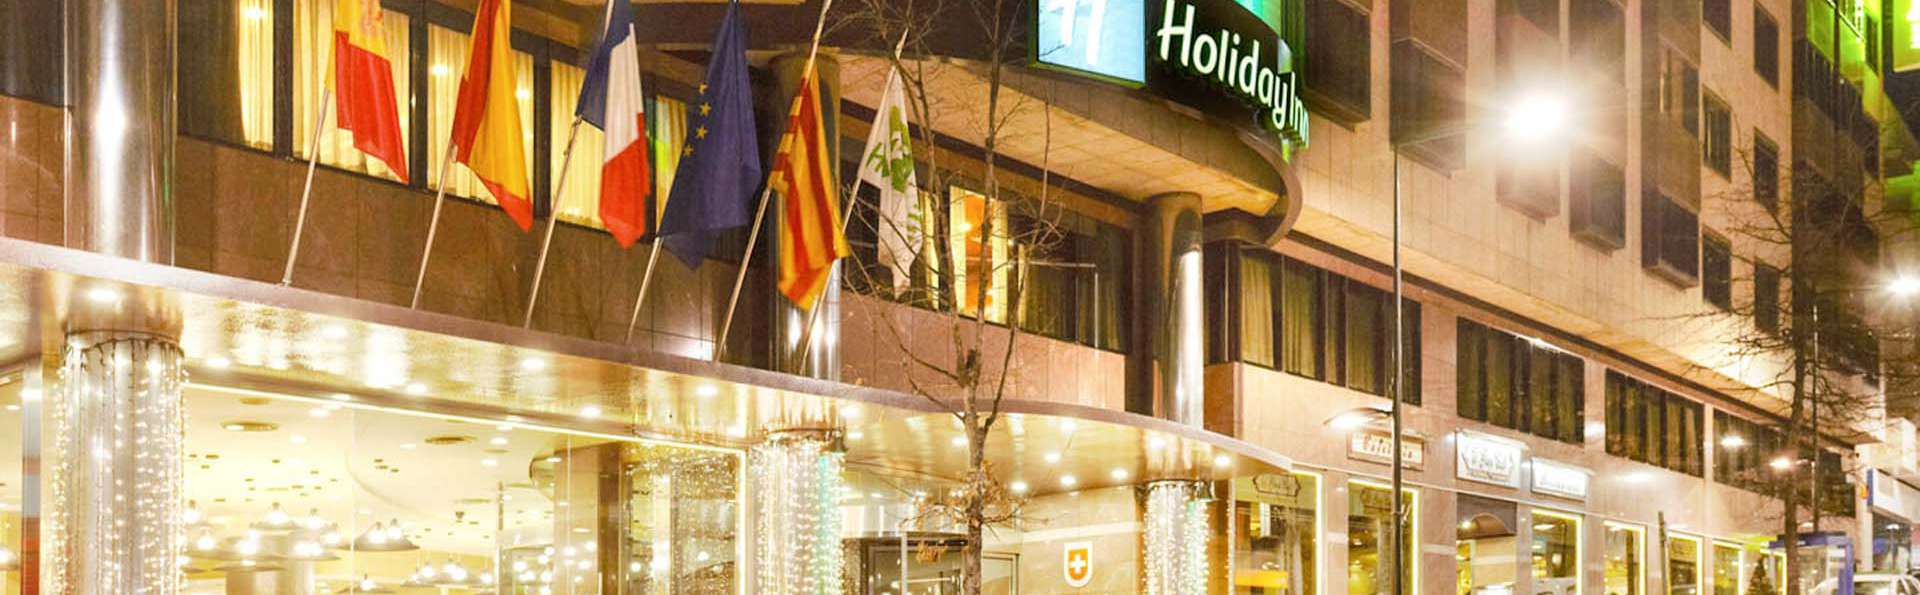 Holiday Inn Andorra  - EDIT_HollidayInn_facana_nit_01.jpg